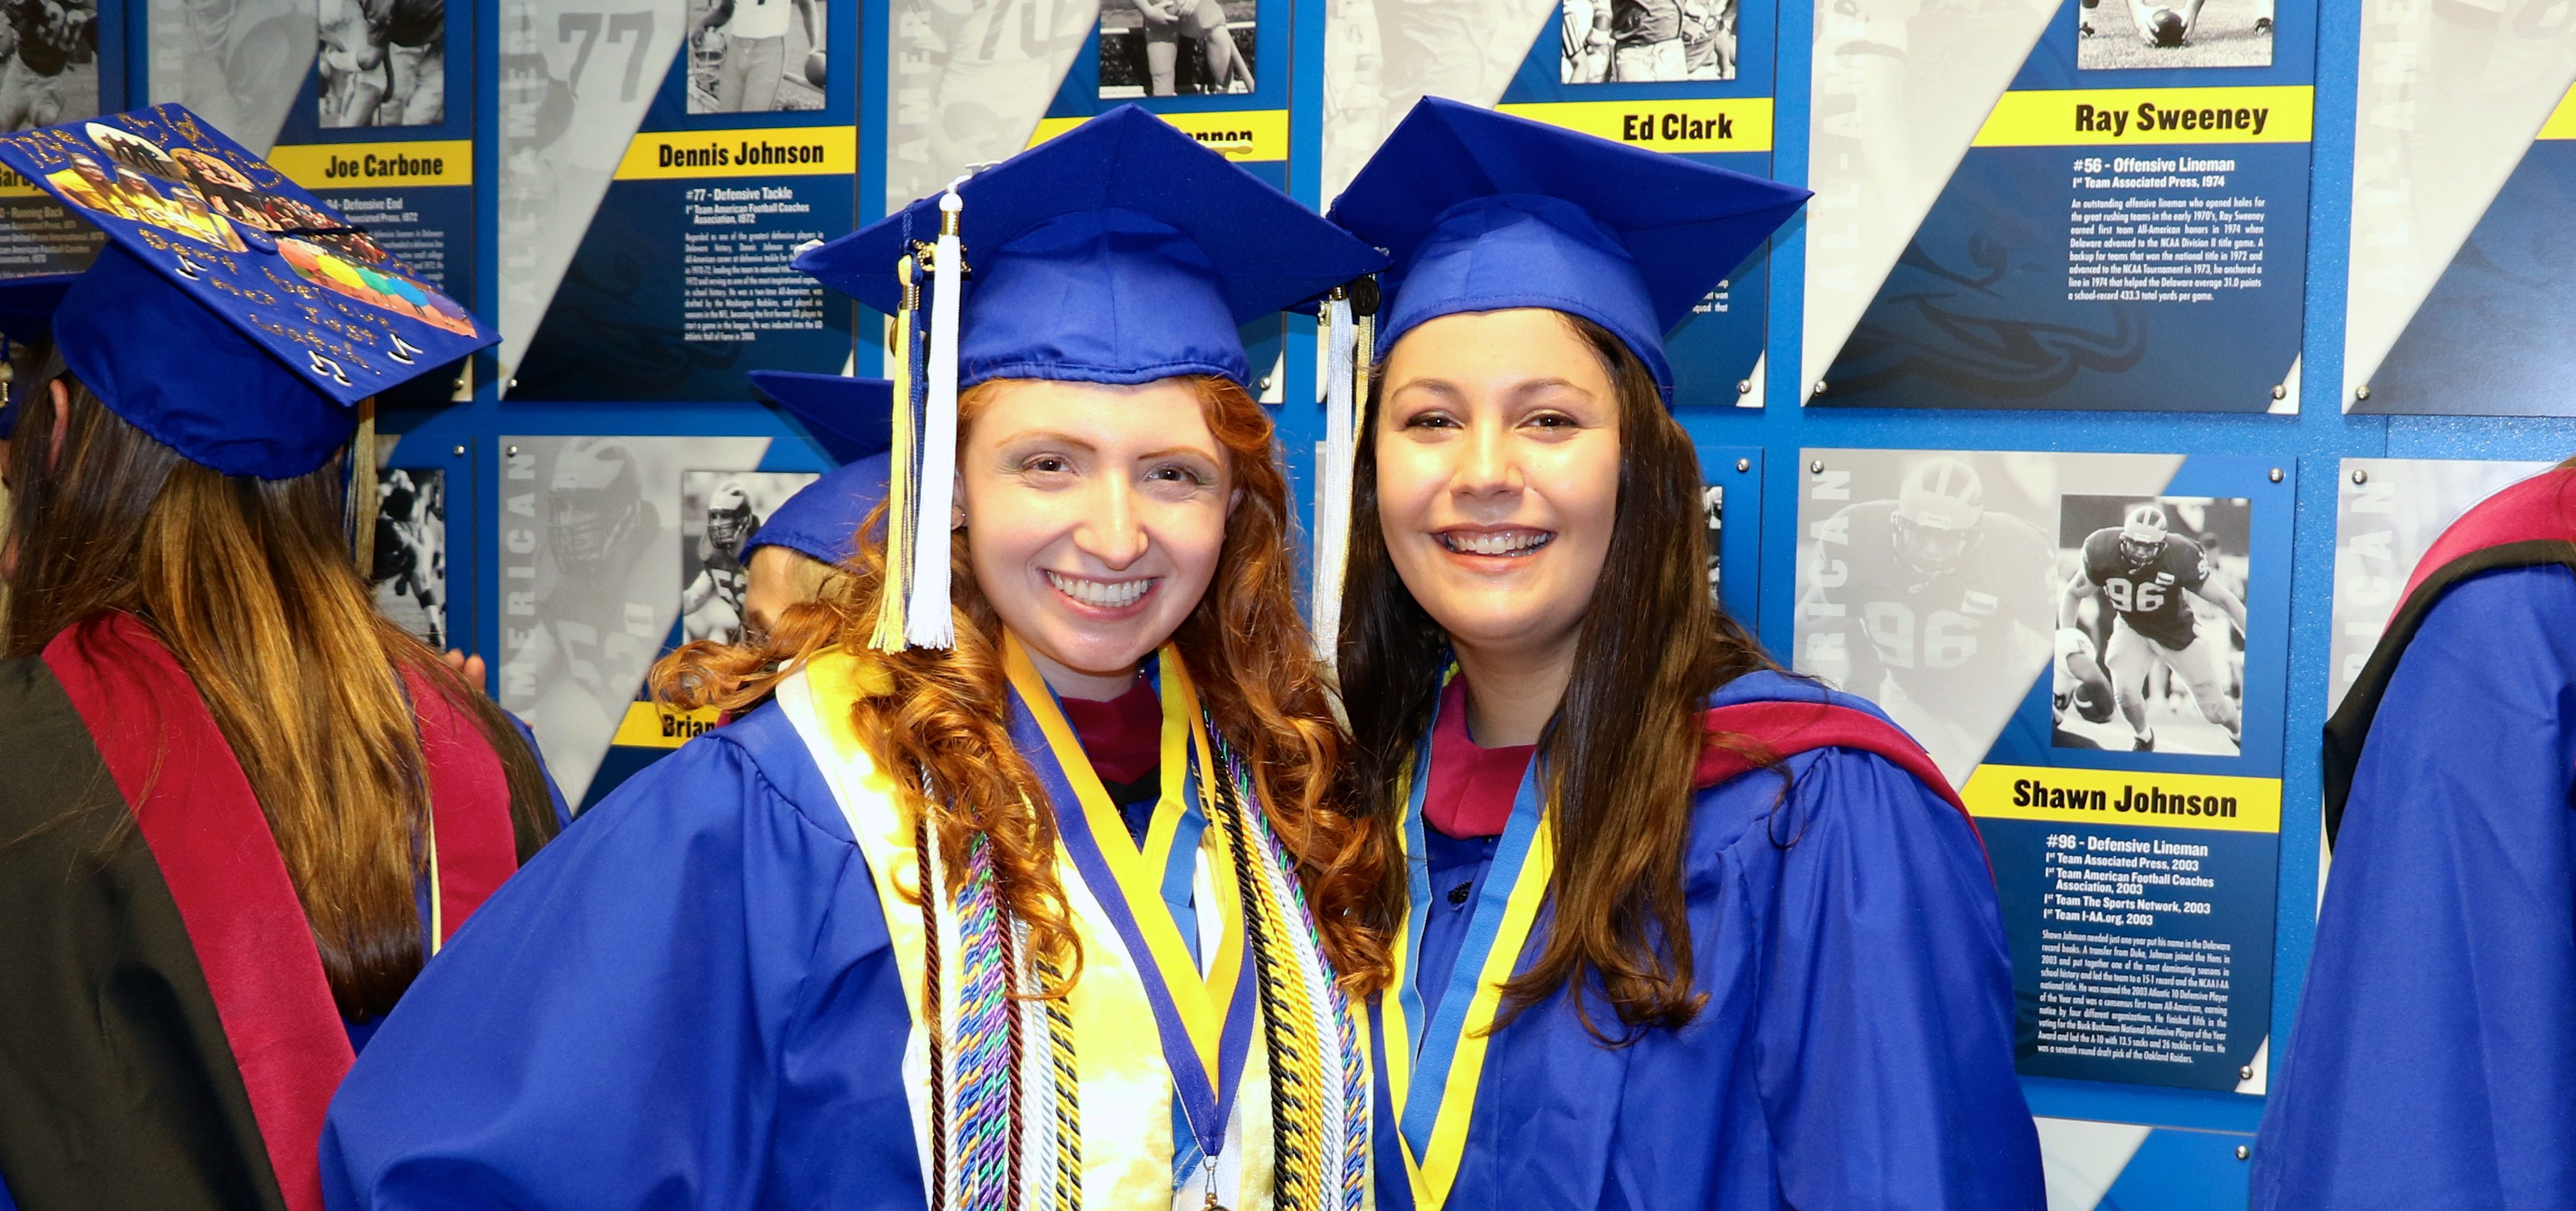 Two College of Education and Human Development students wait in line before graduation ceremonies.